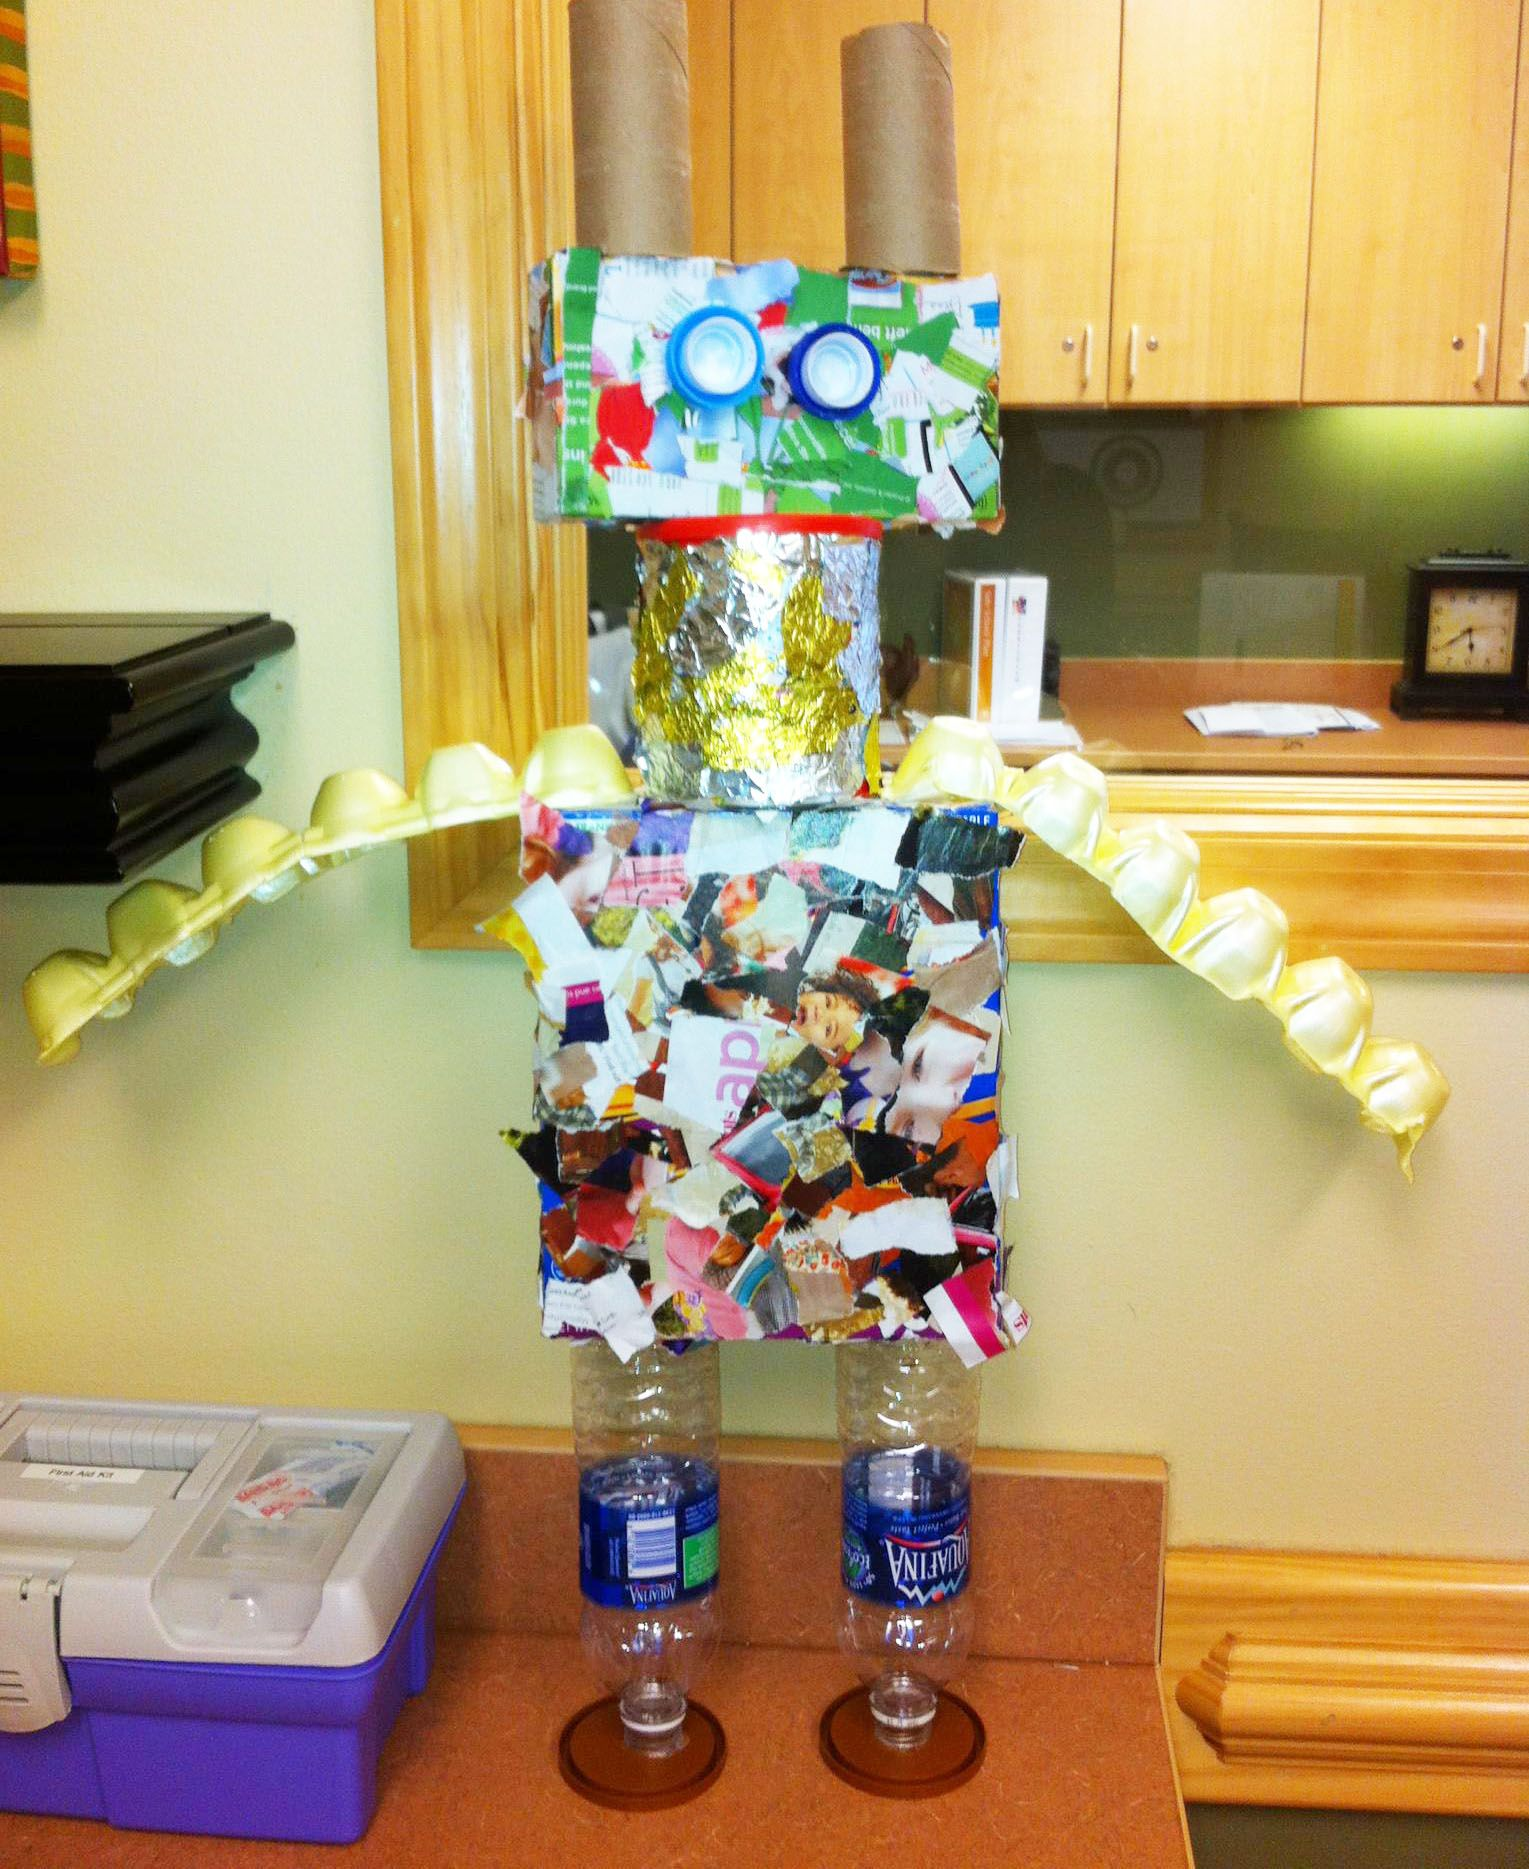 Recycled robot special education uls extension for Recycled items project ideas